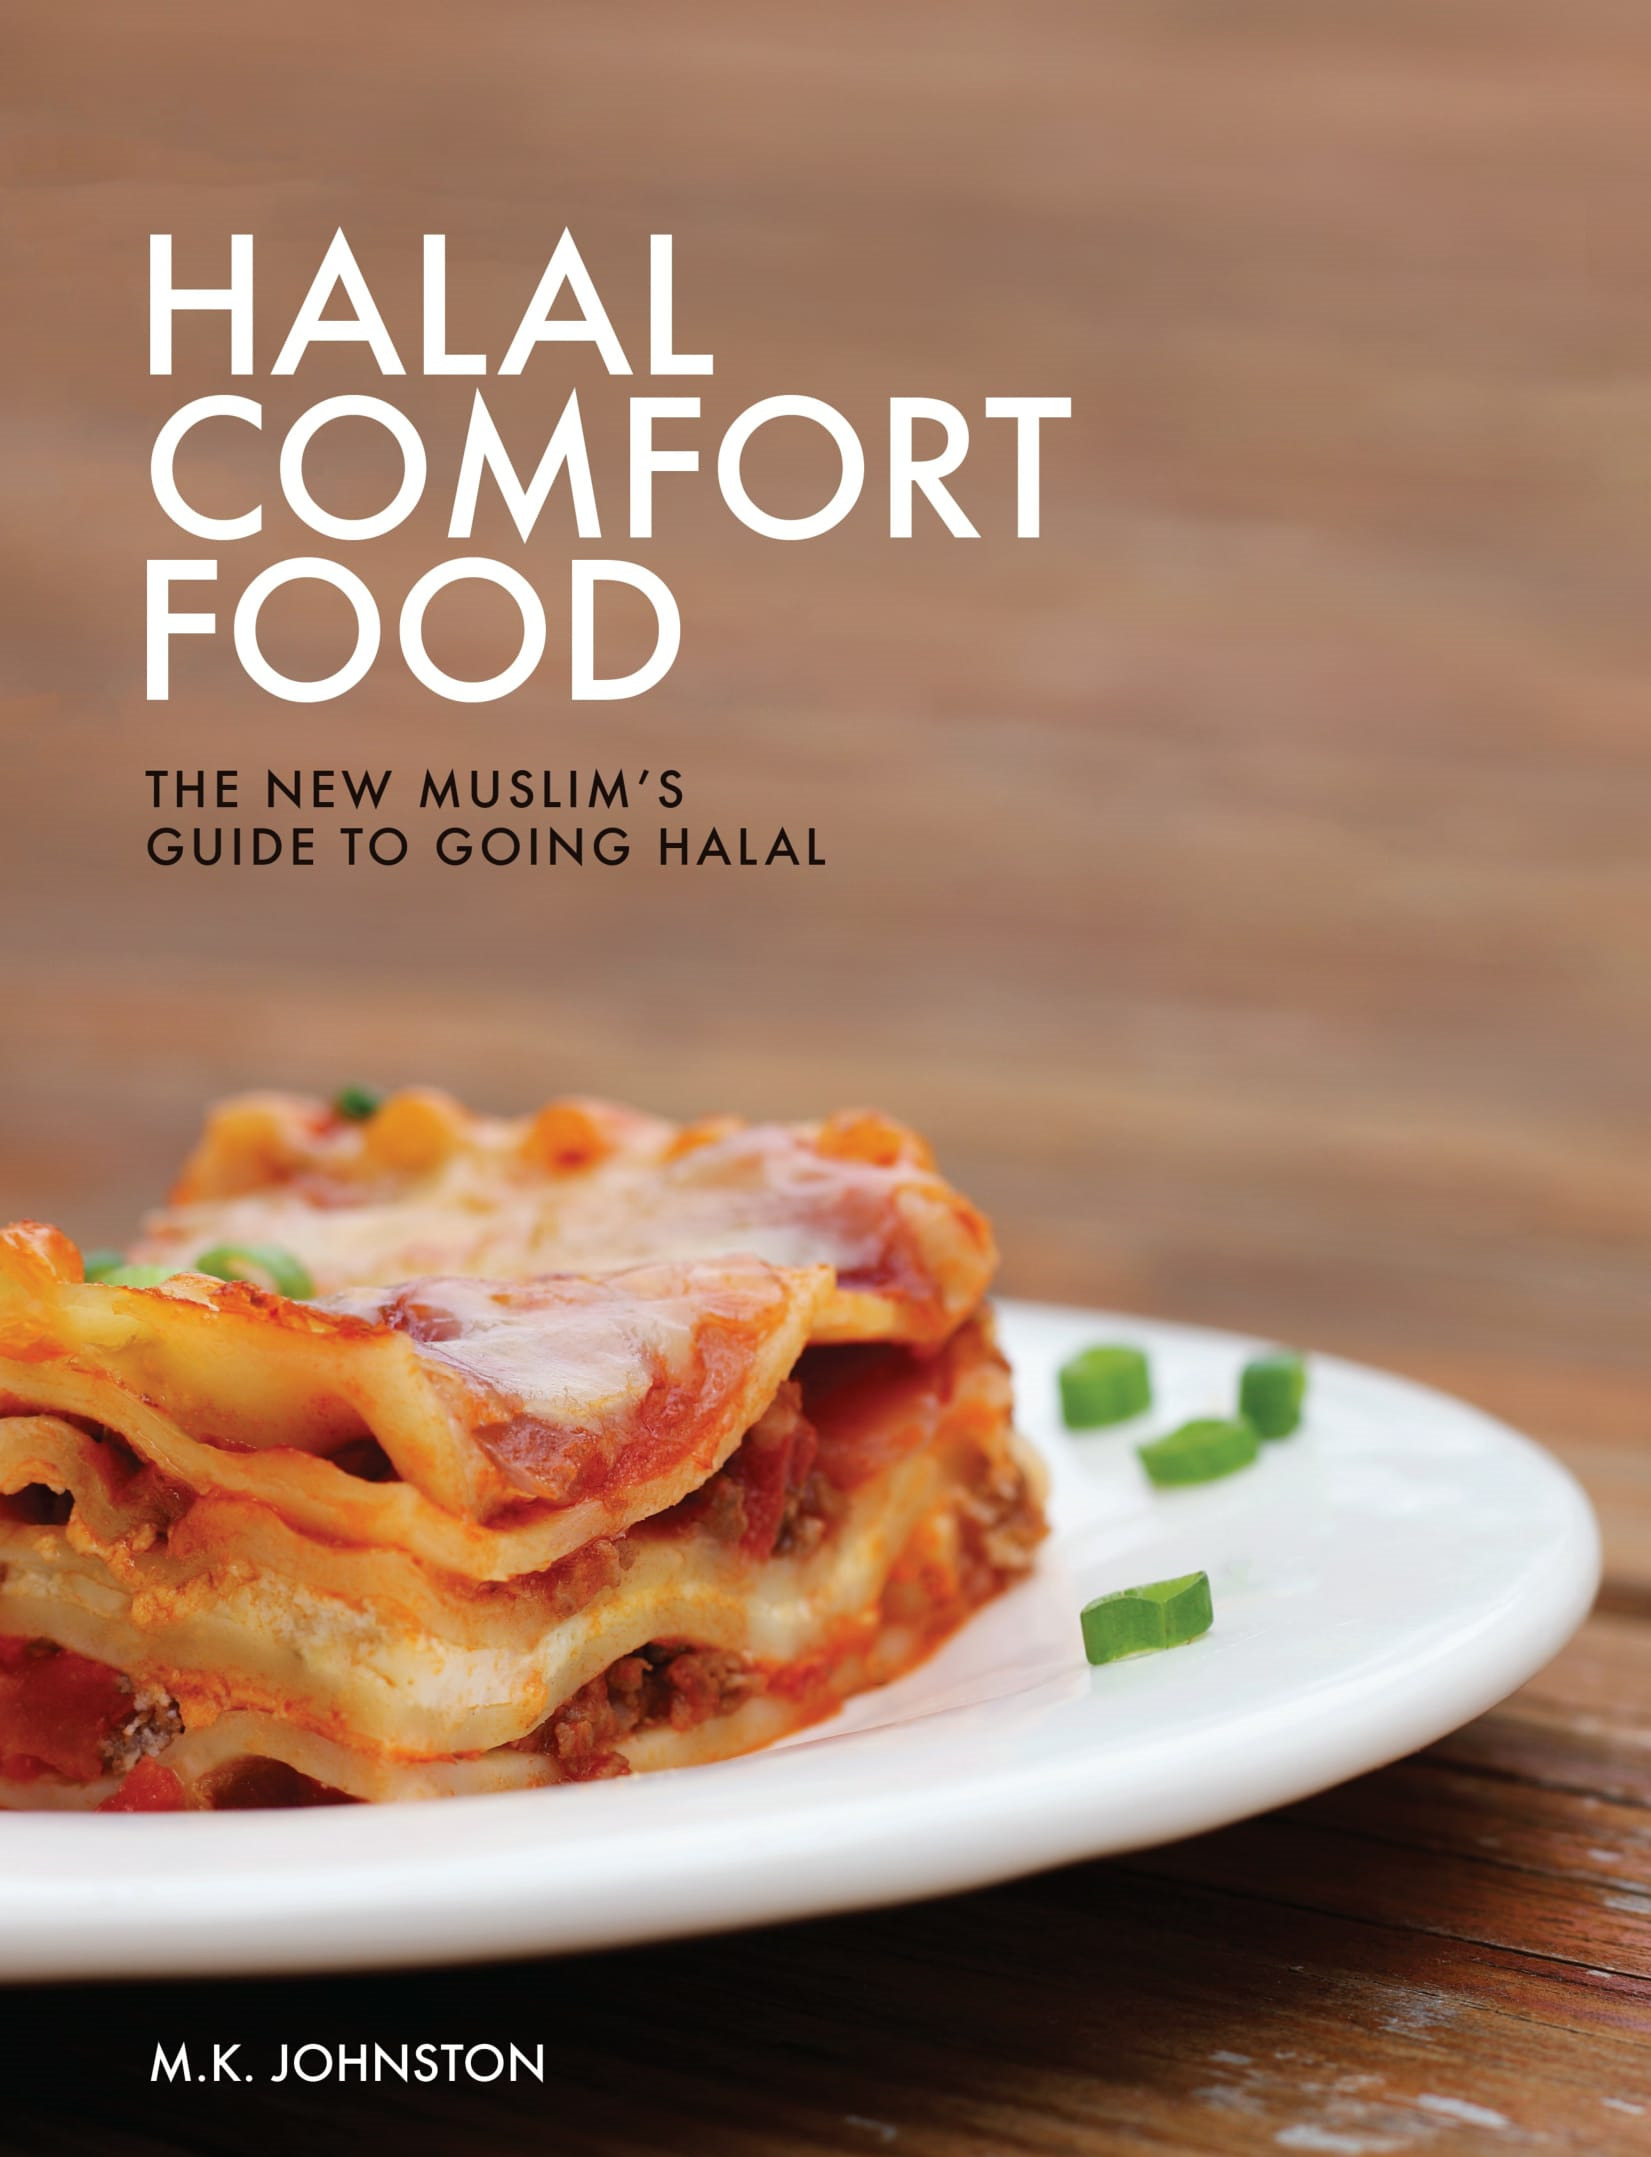 HALAL COMFORT FOOD BY M.K. JOHNSTON … BOOK REVIEW